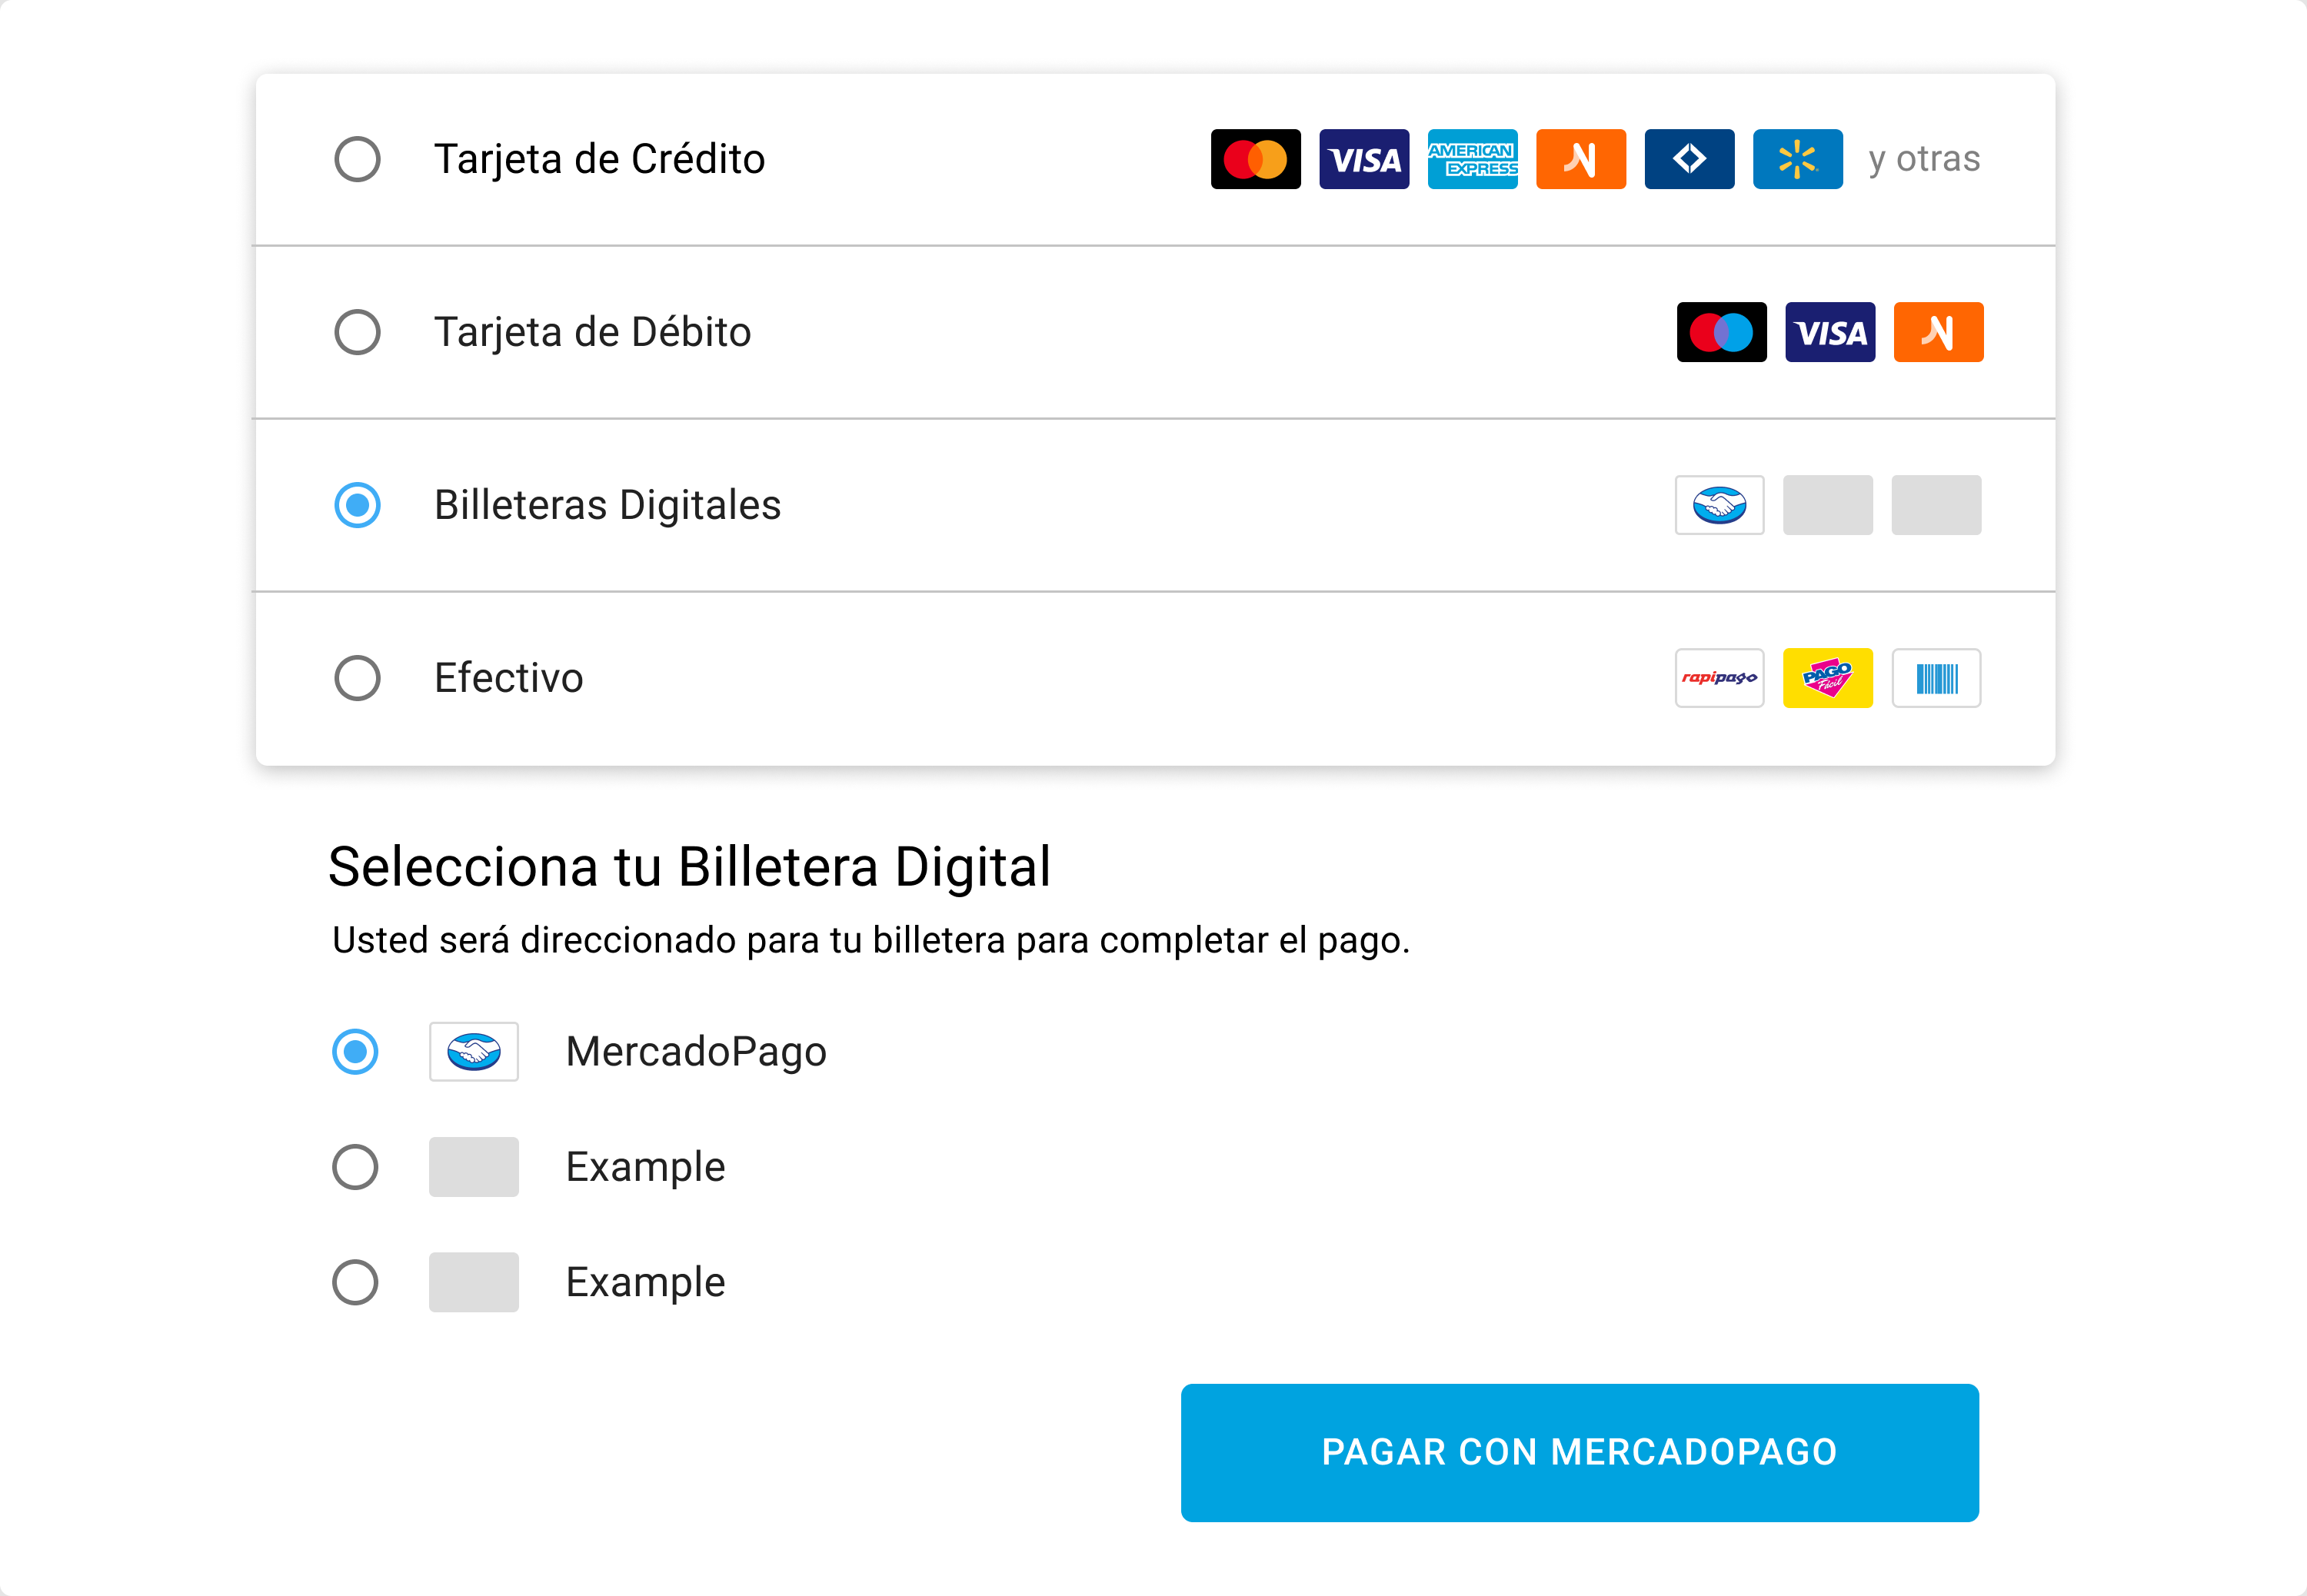 Billeteiras digitales